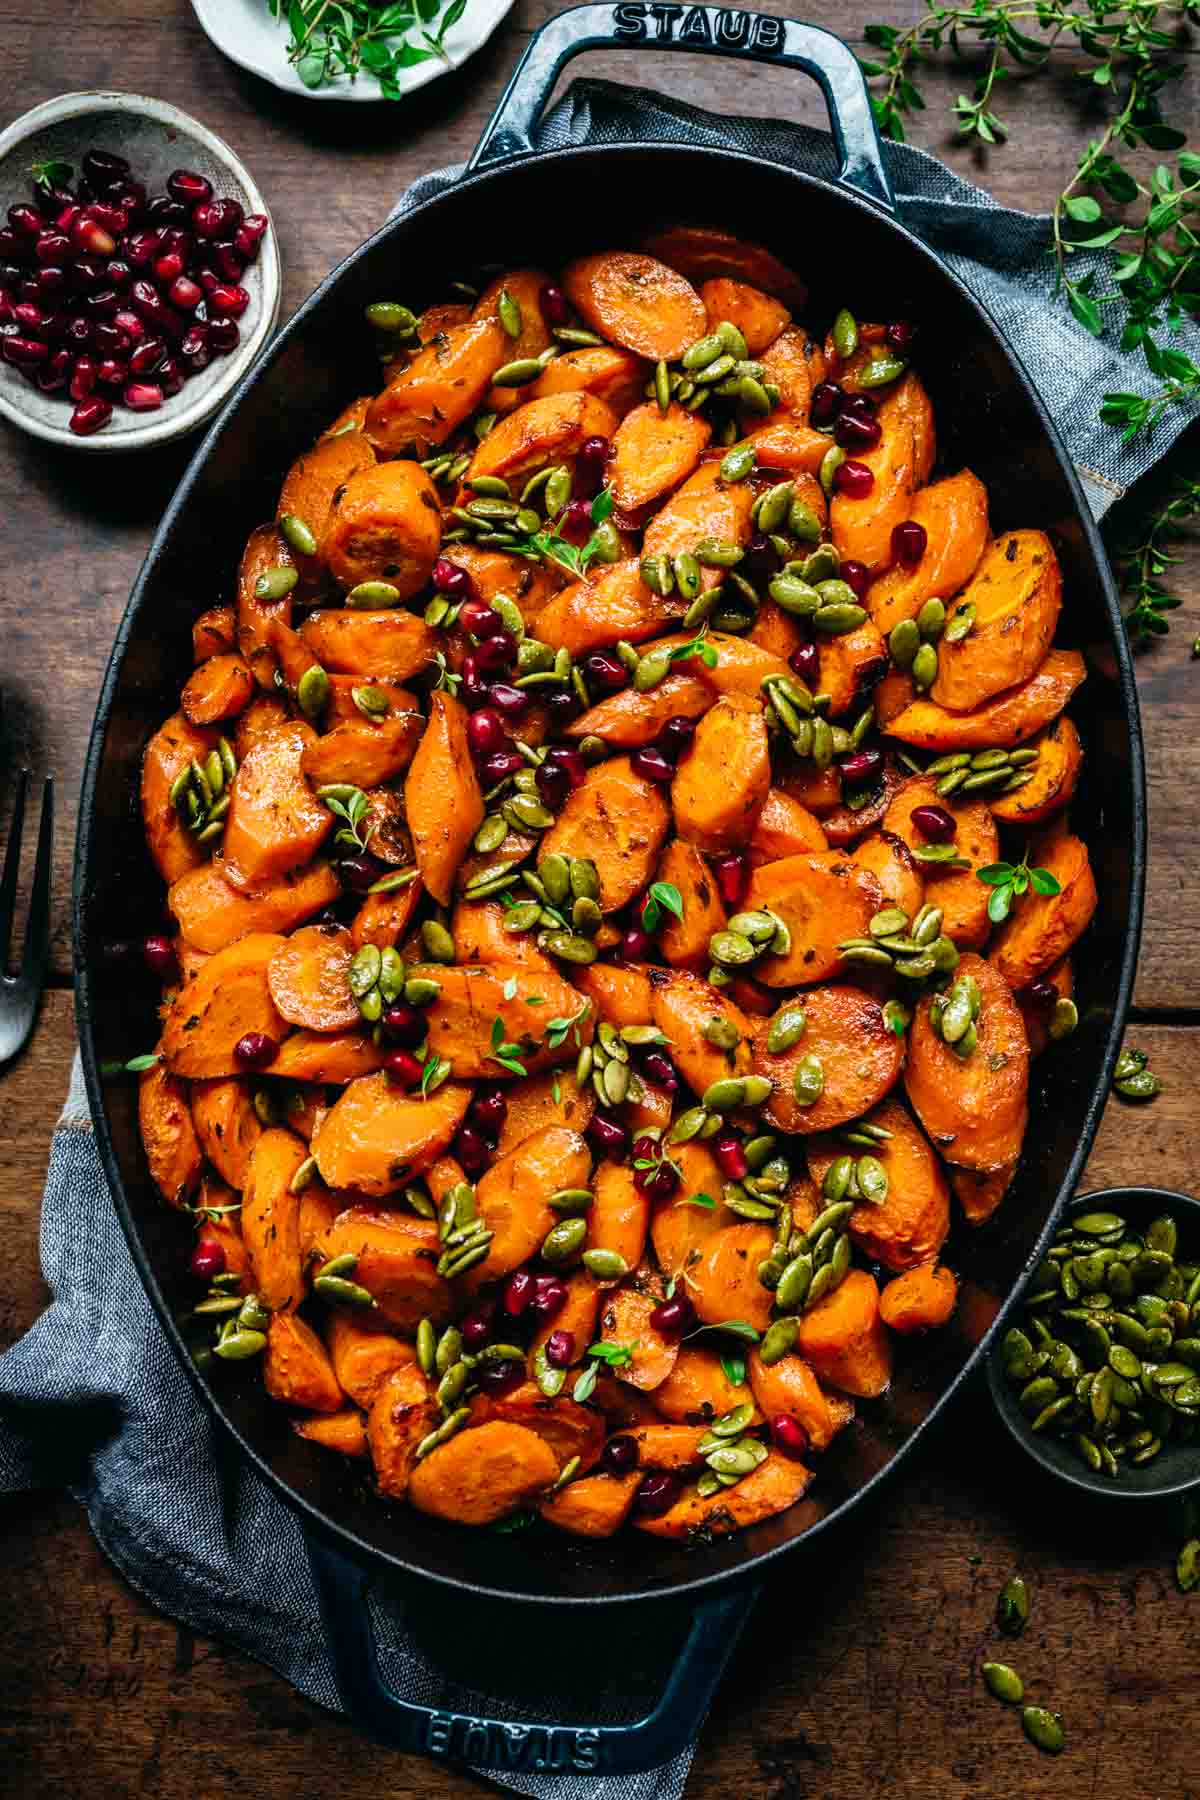 Overhead view of glazed carrots in a pan with pomegranate and pumpkin seeds.